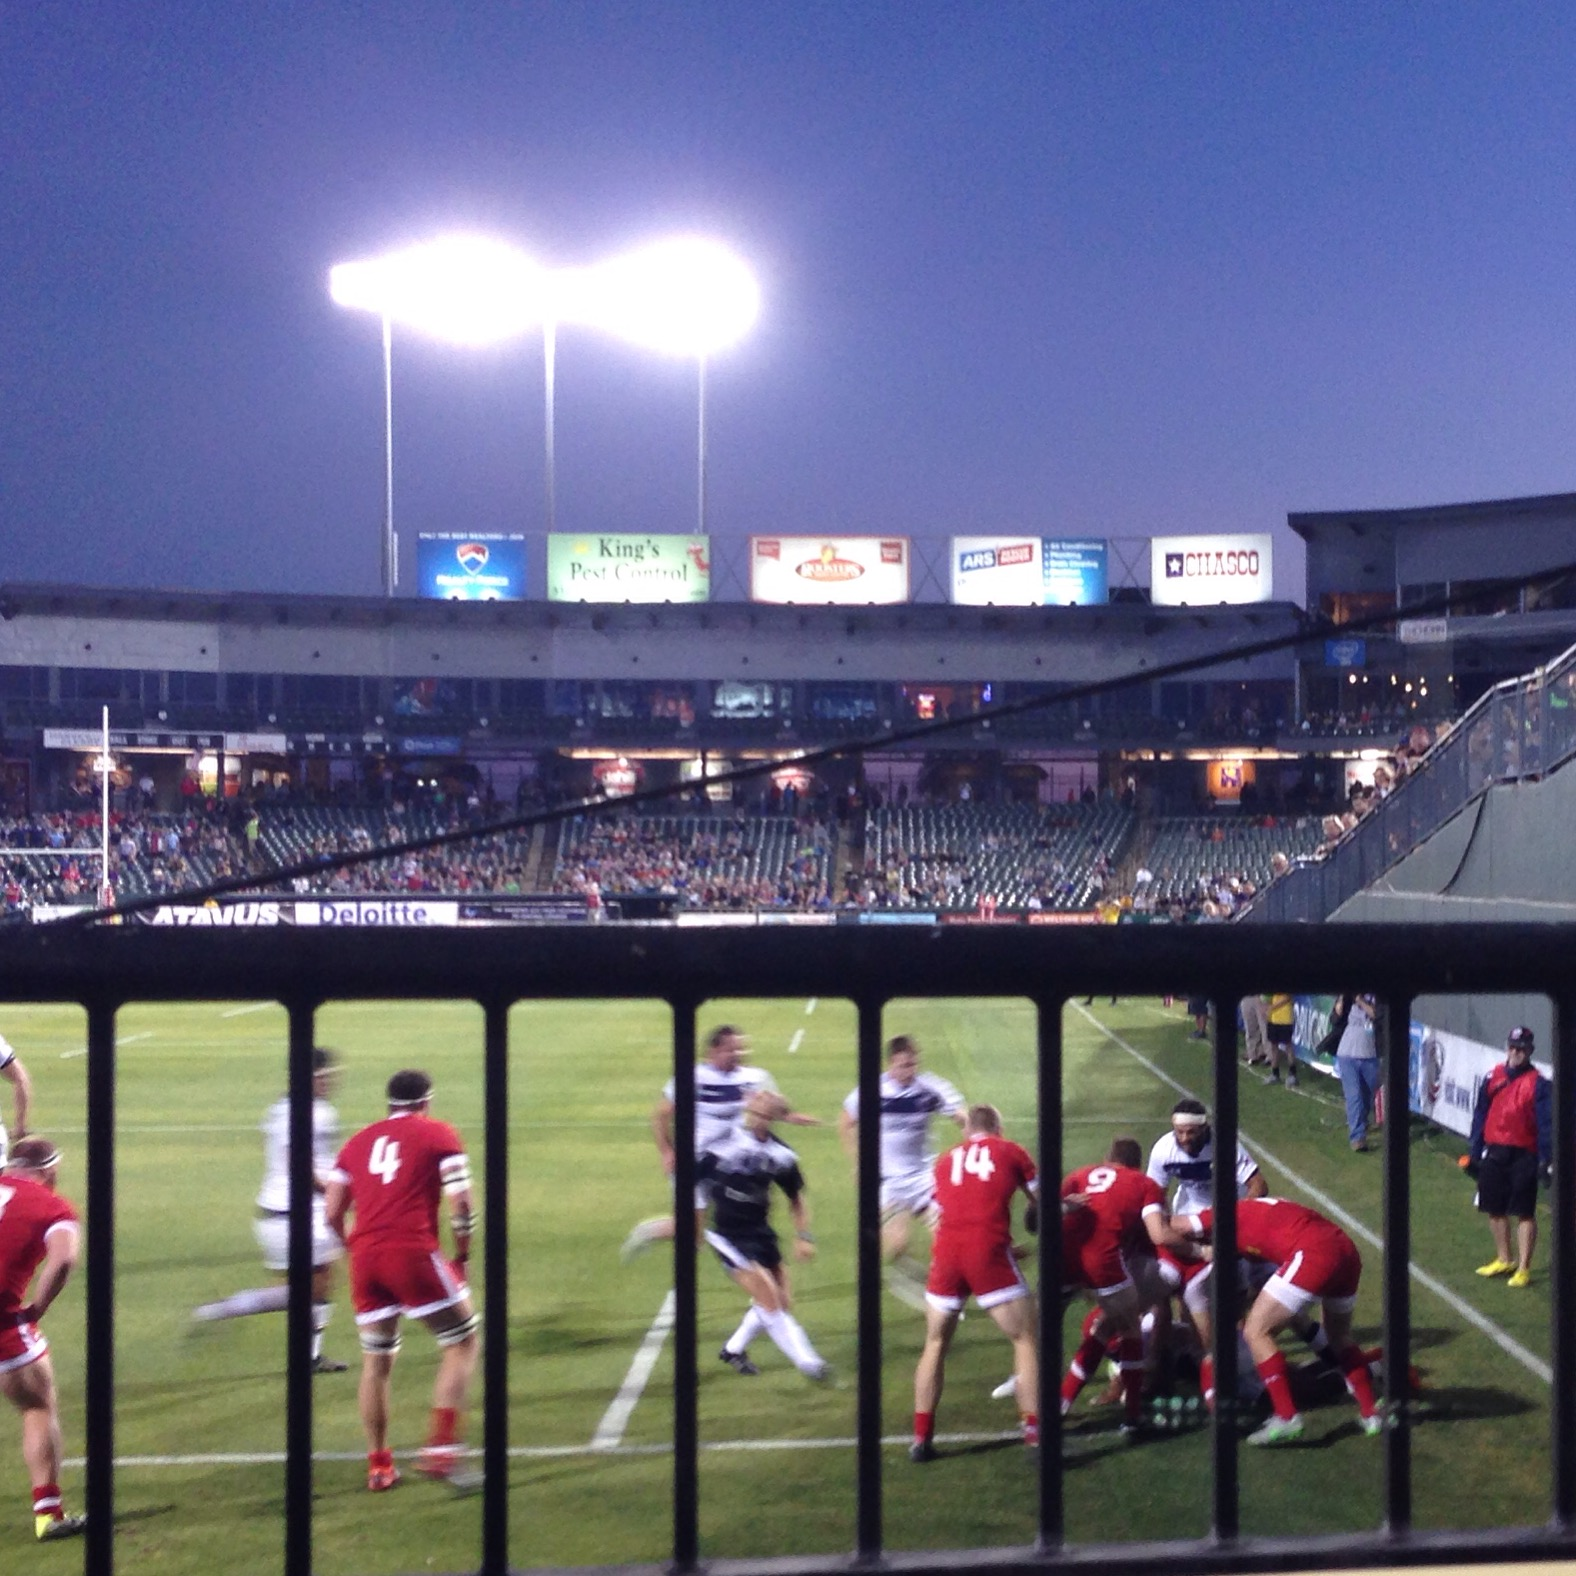 Rugby at the Dell Diamond with some of my favorite people. This was such a fun melding of two entertaining sports experiences.